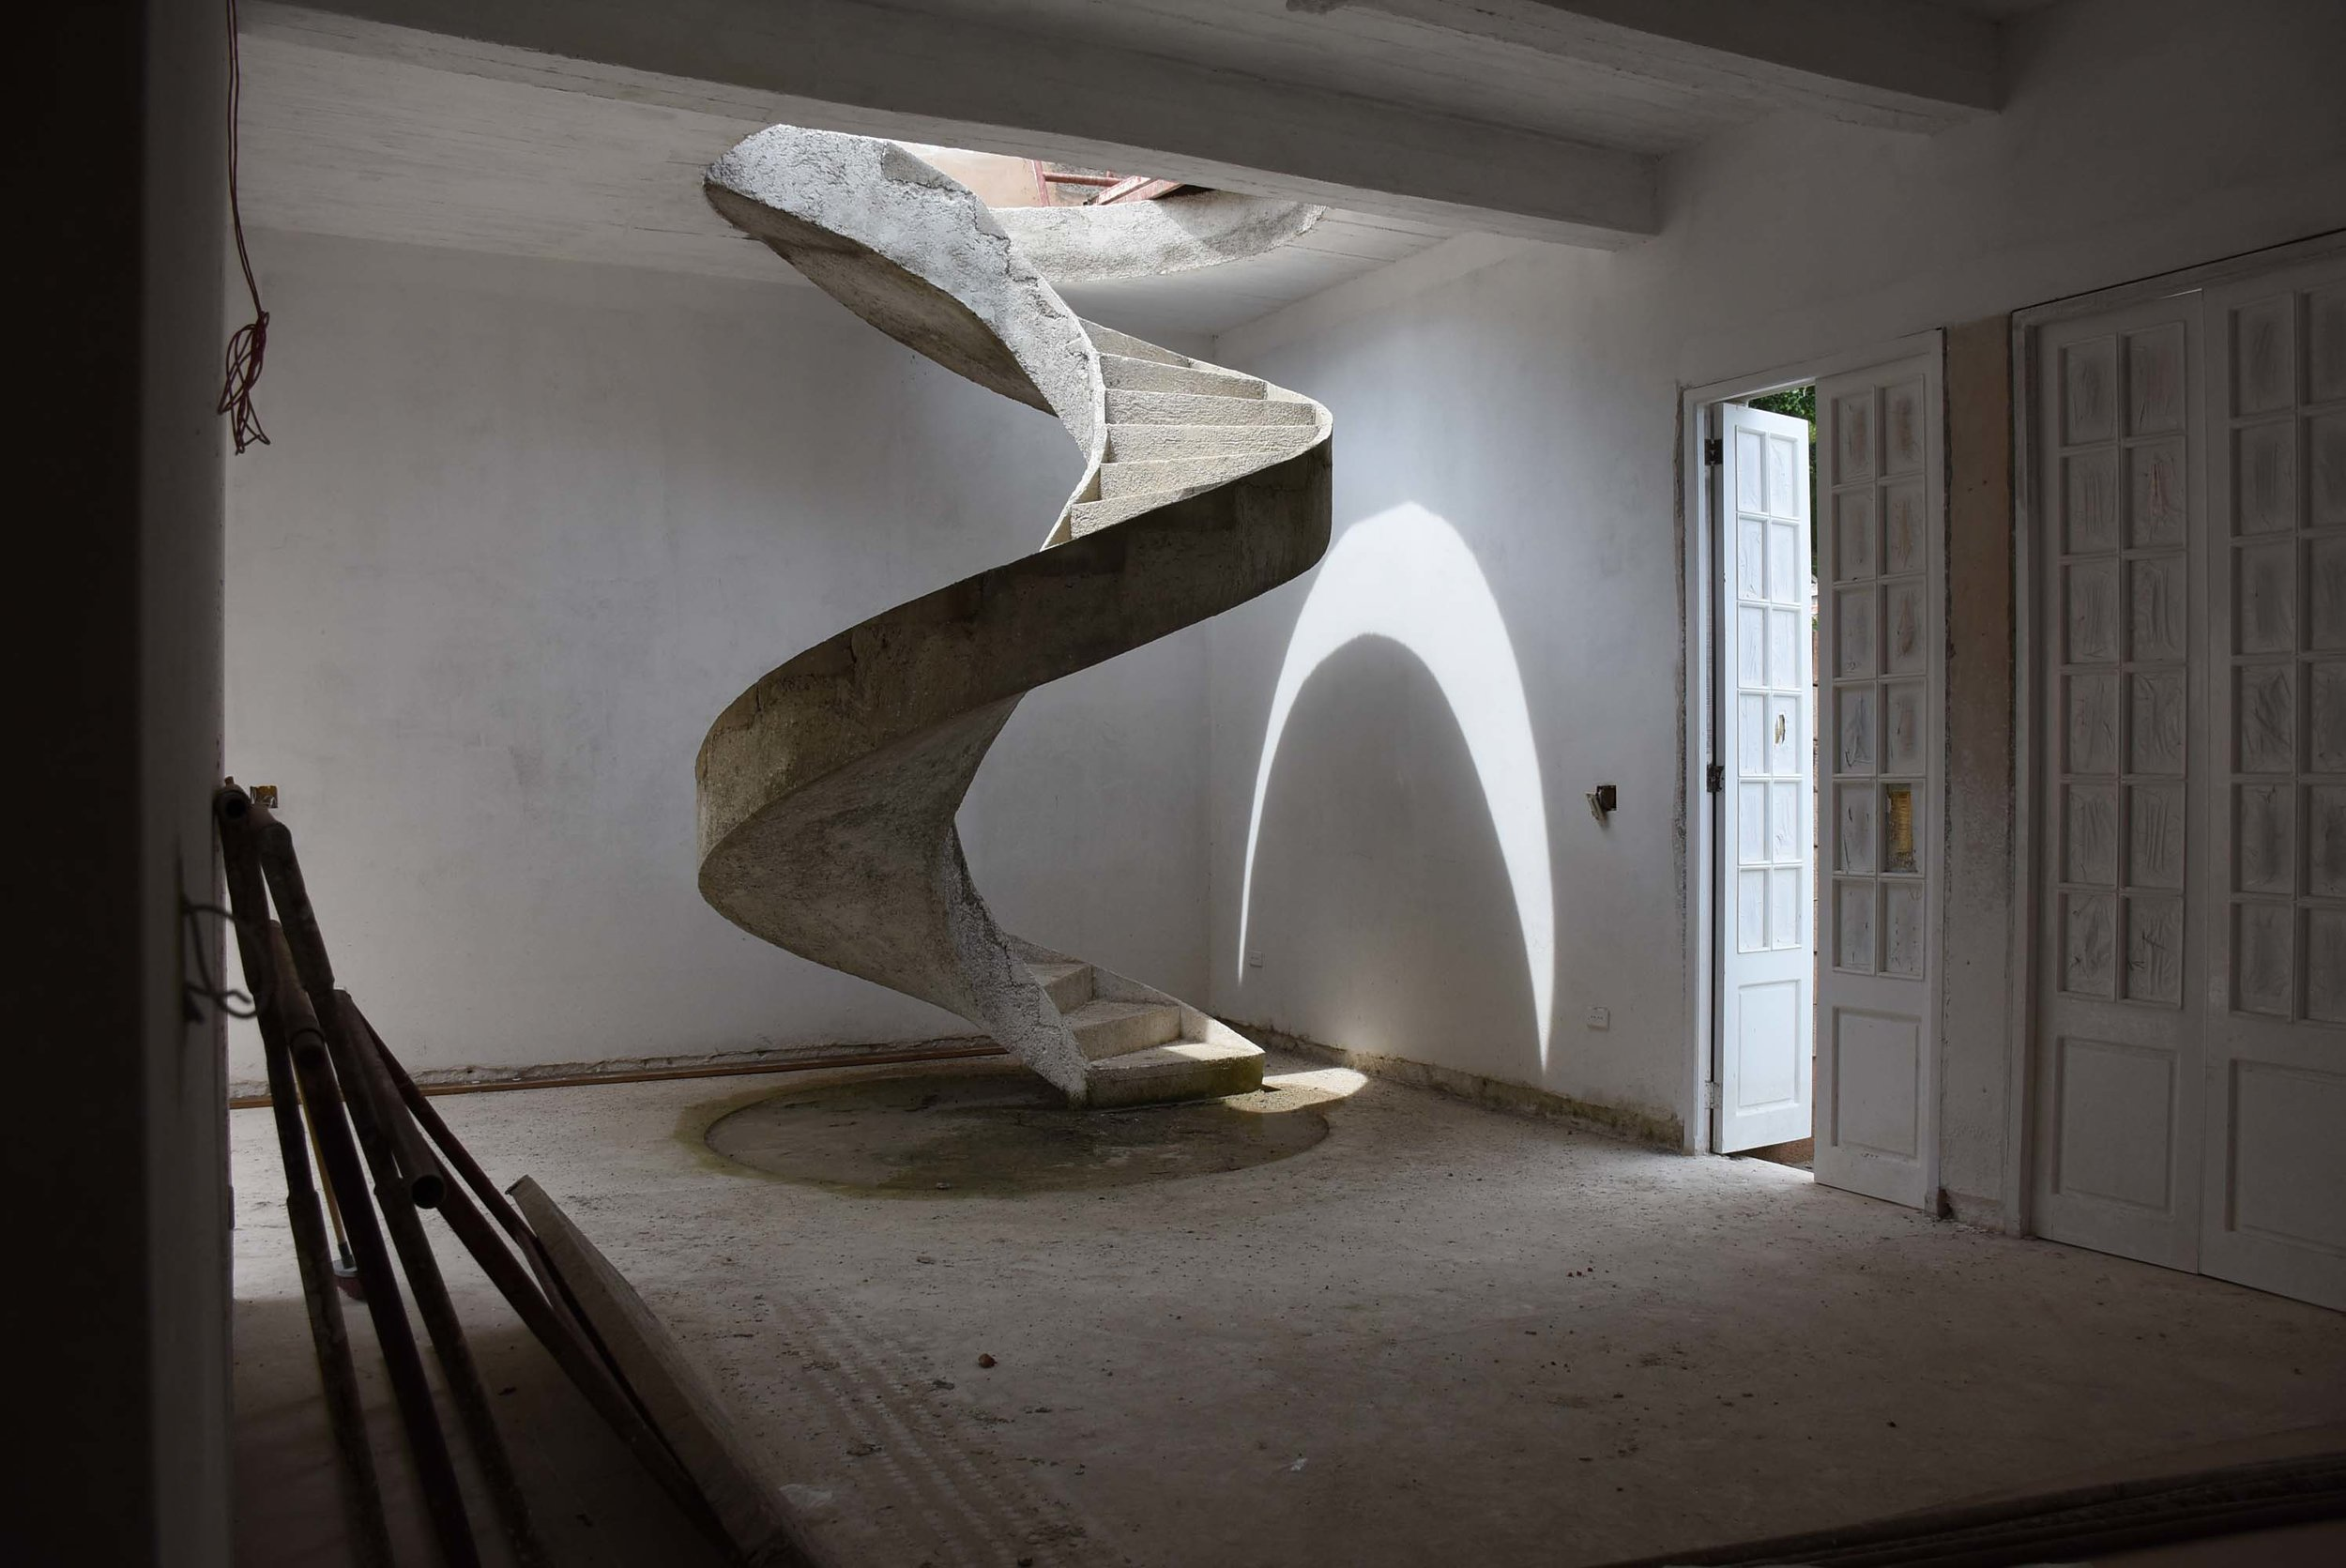 Cast-in-place concrete staircase in house under renovation by independent architect, Miramar, Havana, 2017.